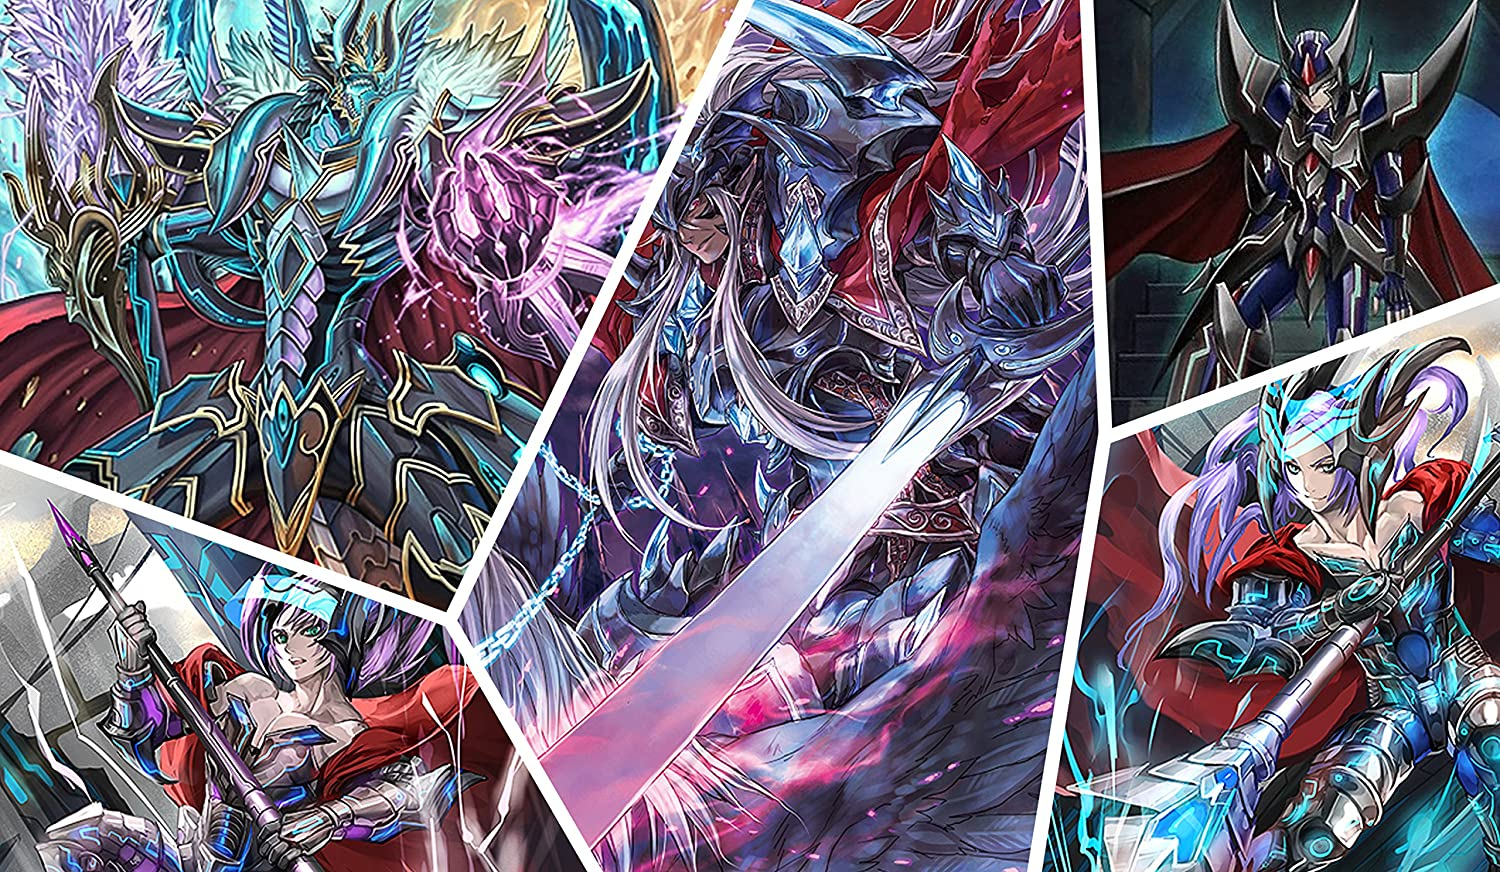 mejor servicio Vanguard Shadow Paladin PLAYMAT CUSTOM CUSTOM CUSTOM PLAY MAT ANIME PLAYMAT 105 by MT  auténtico